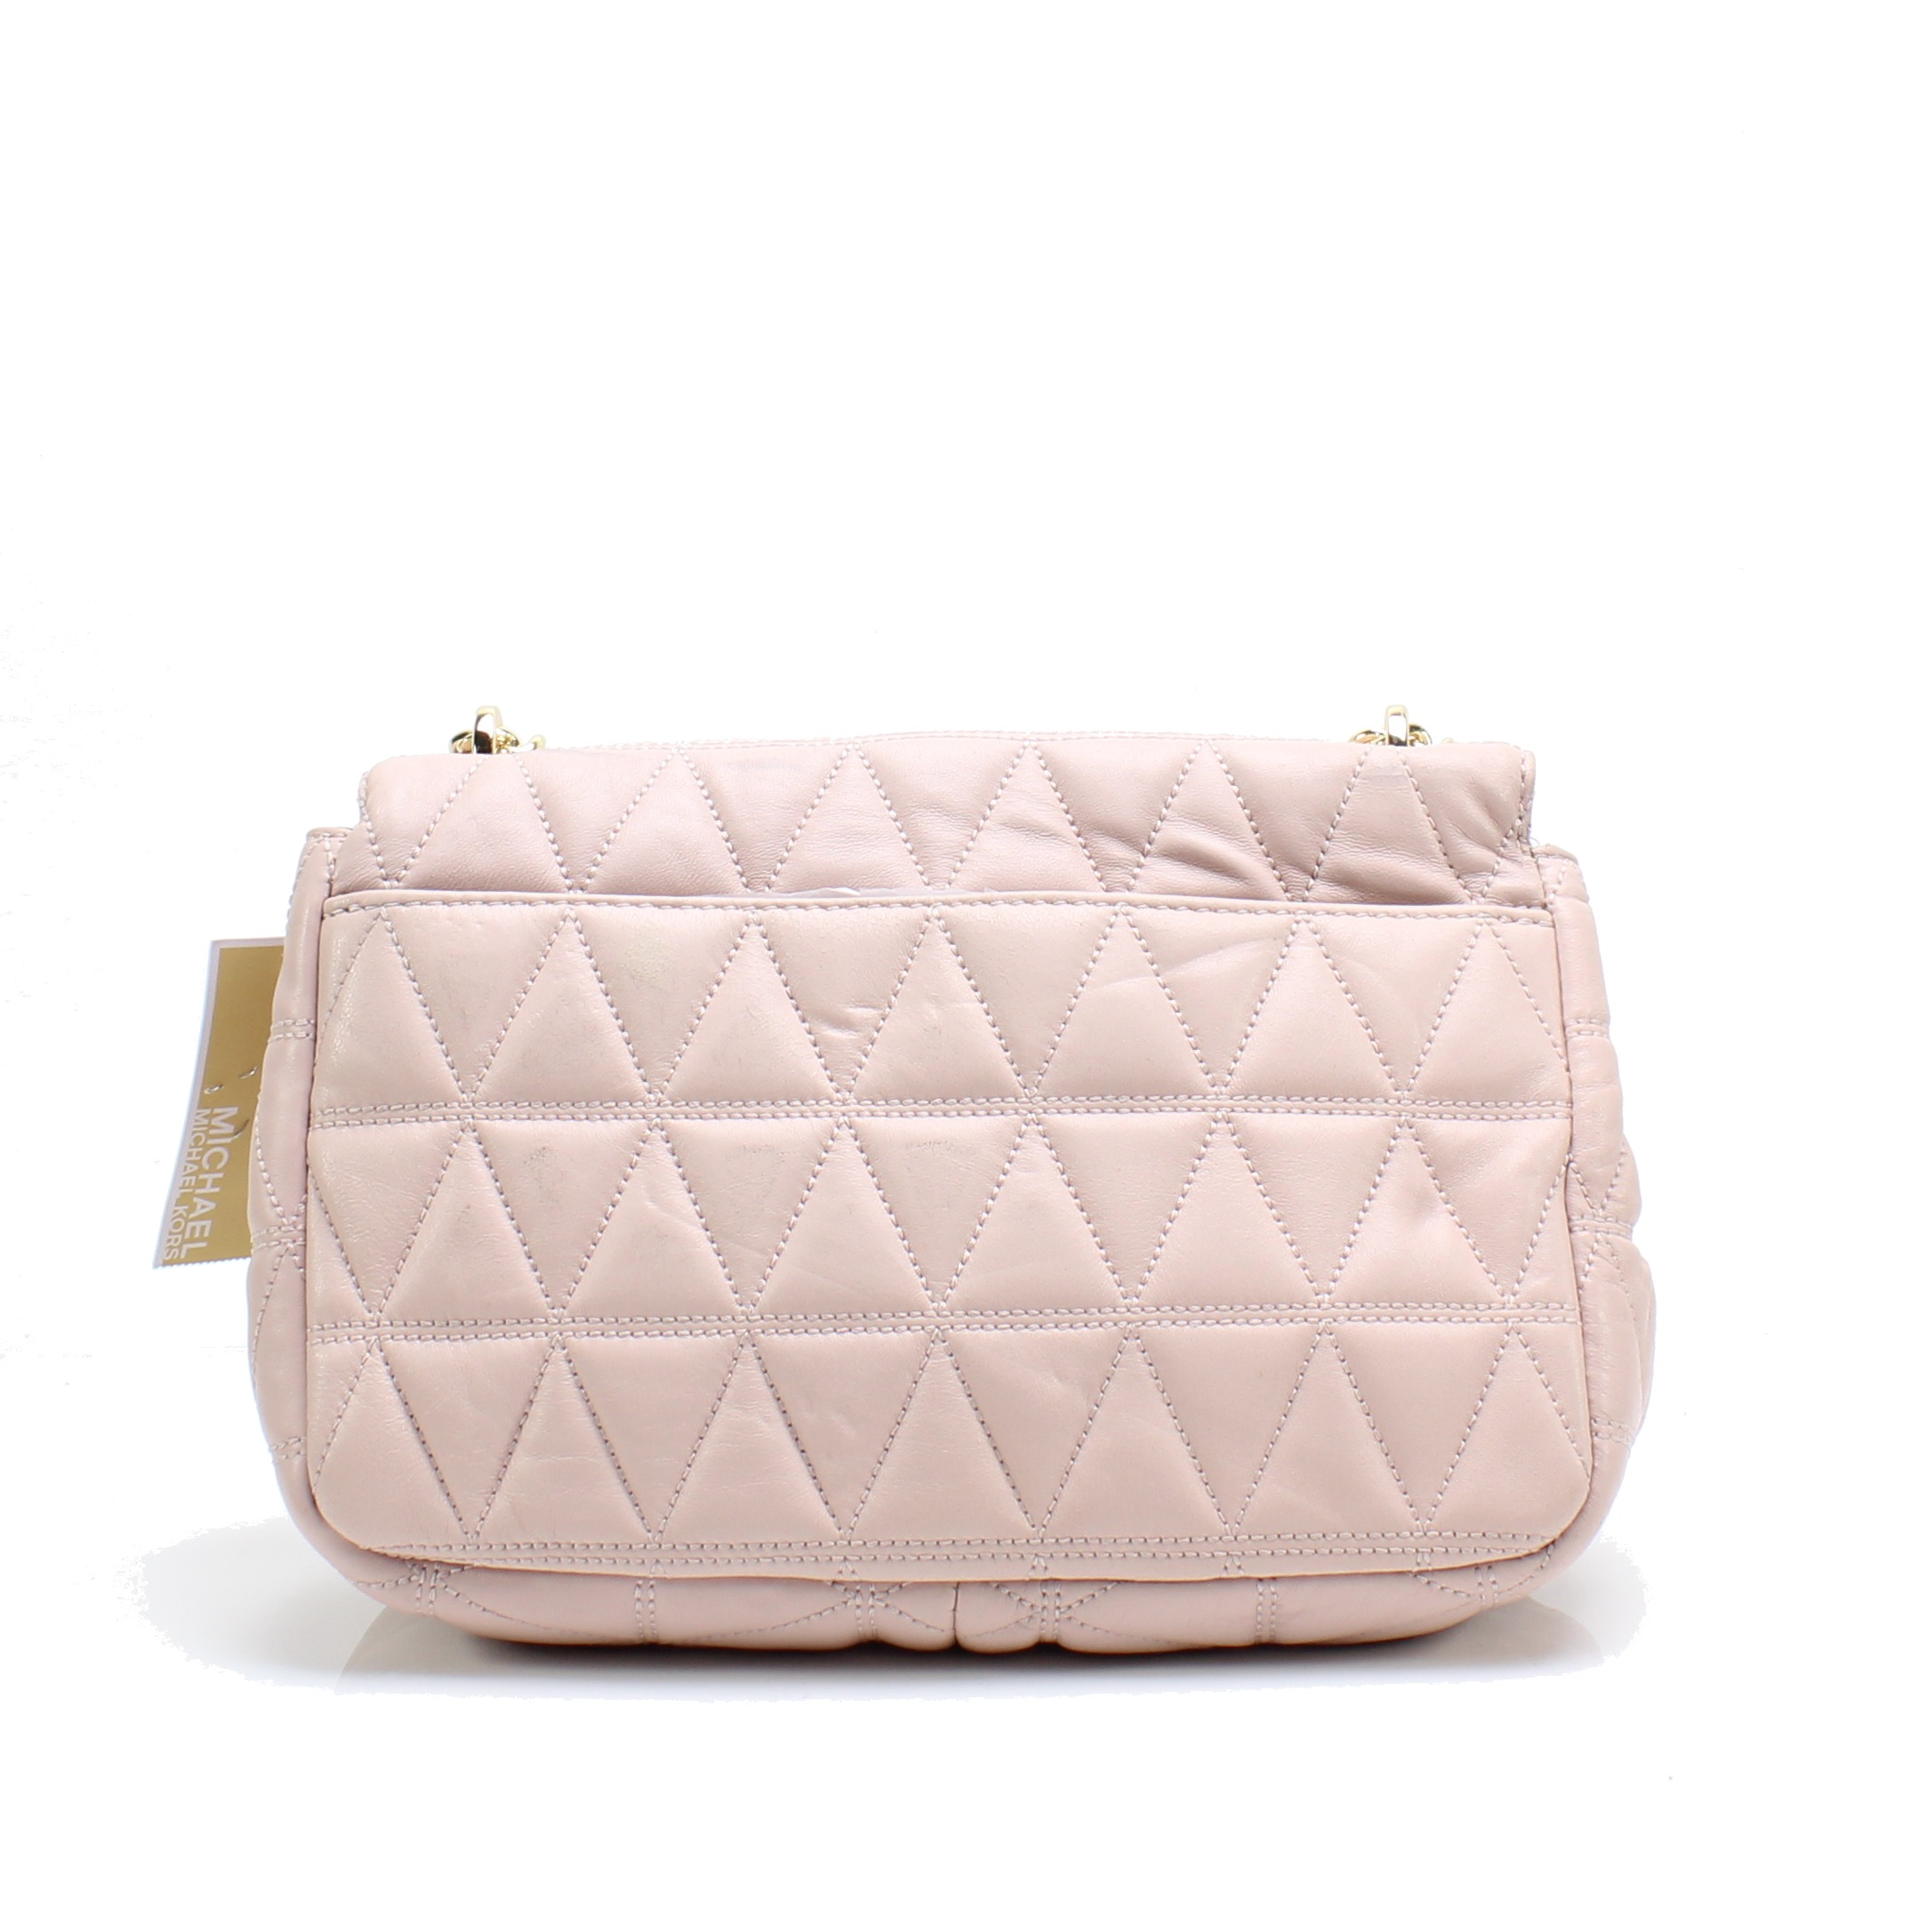 27a1a2a62e58 Michael Kors NEW Soft Pink Sloan Large Quilted-Leather Shoulder Bag ...